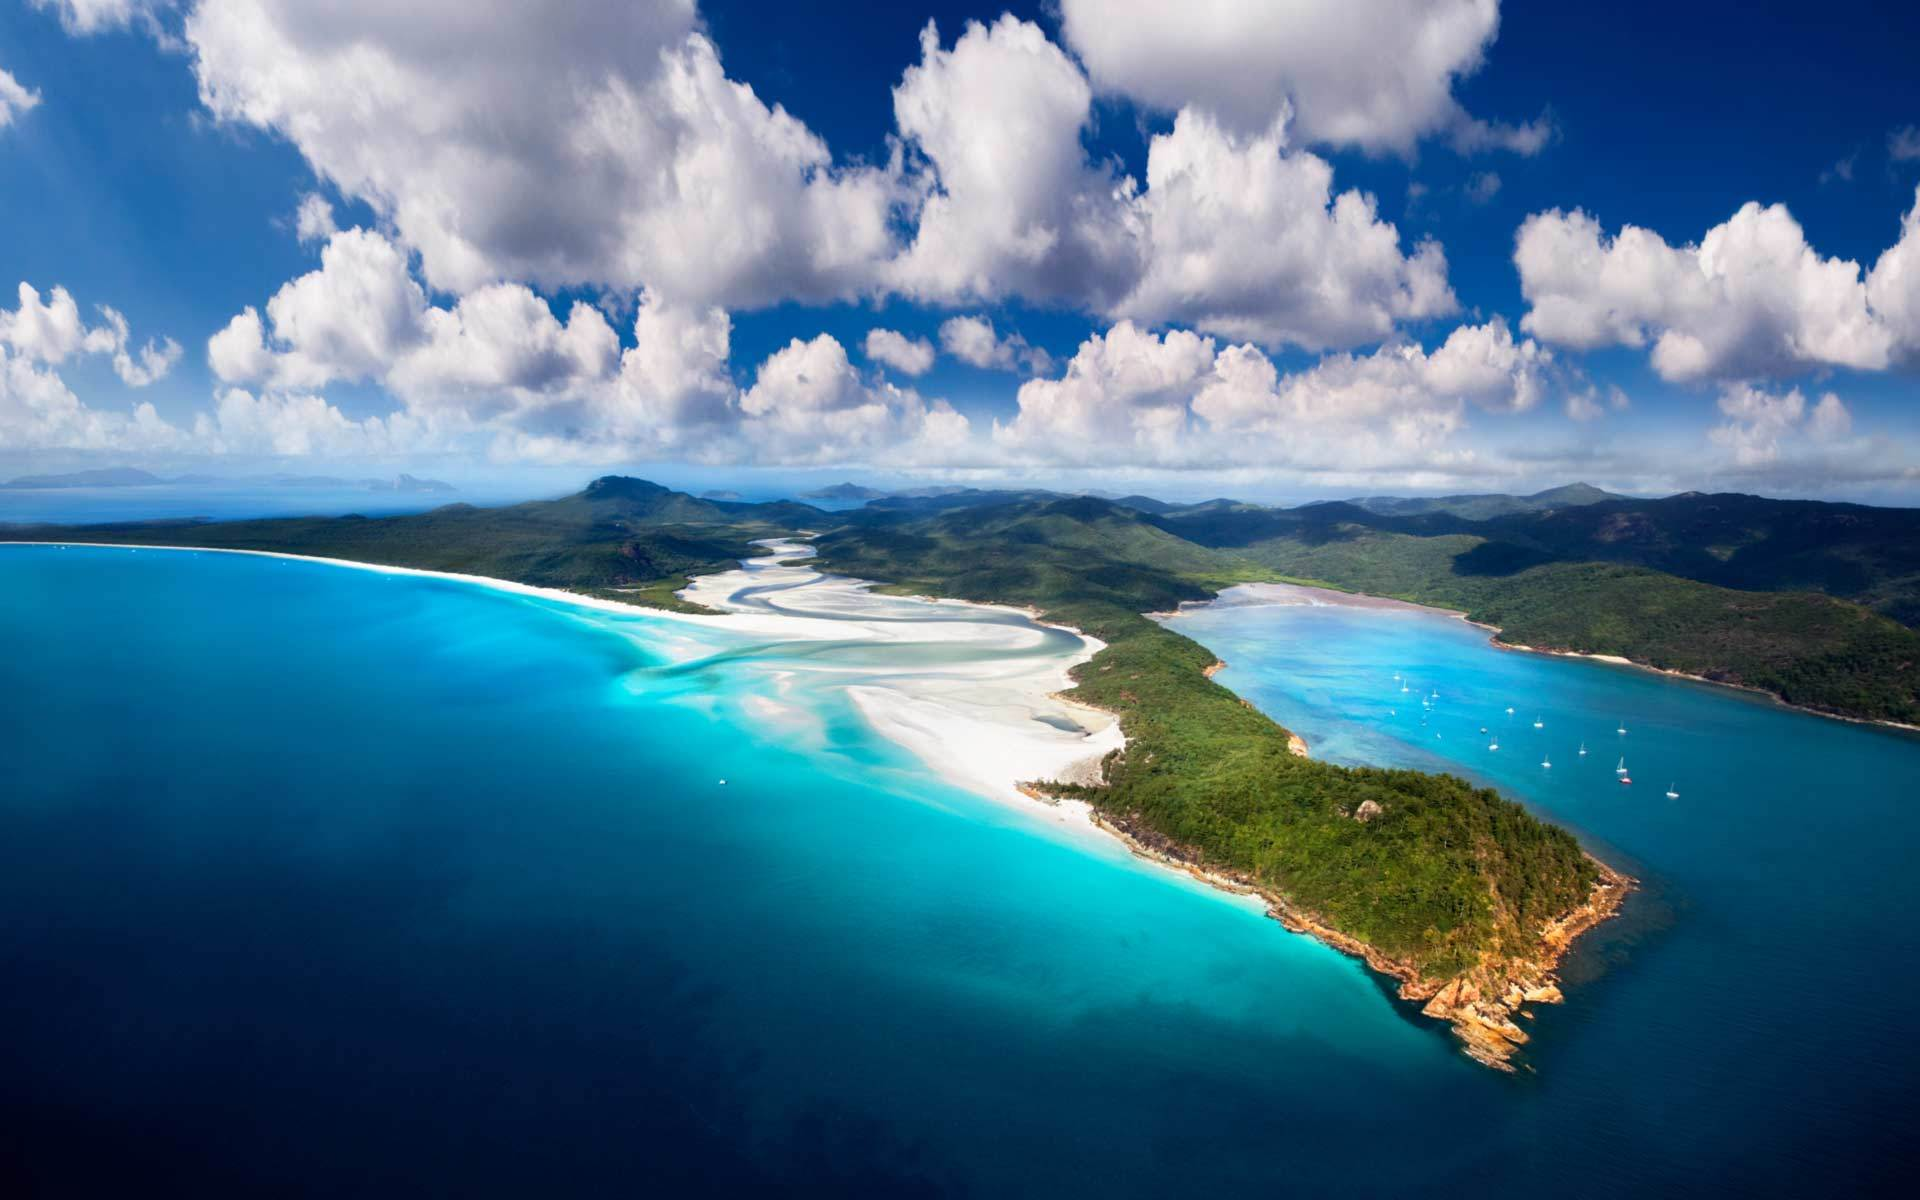 Whitehaven beach at Withsunday Islands